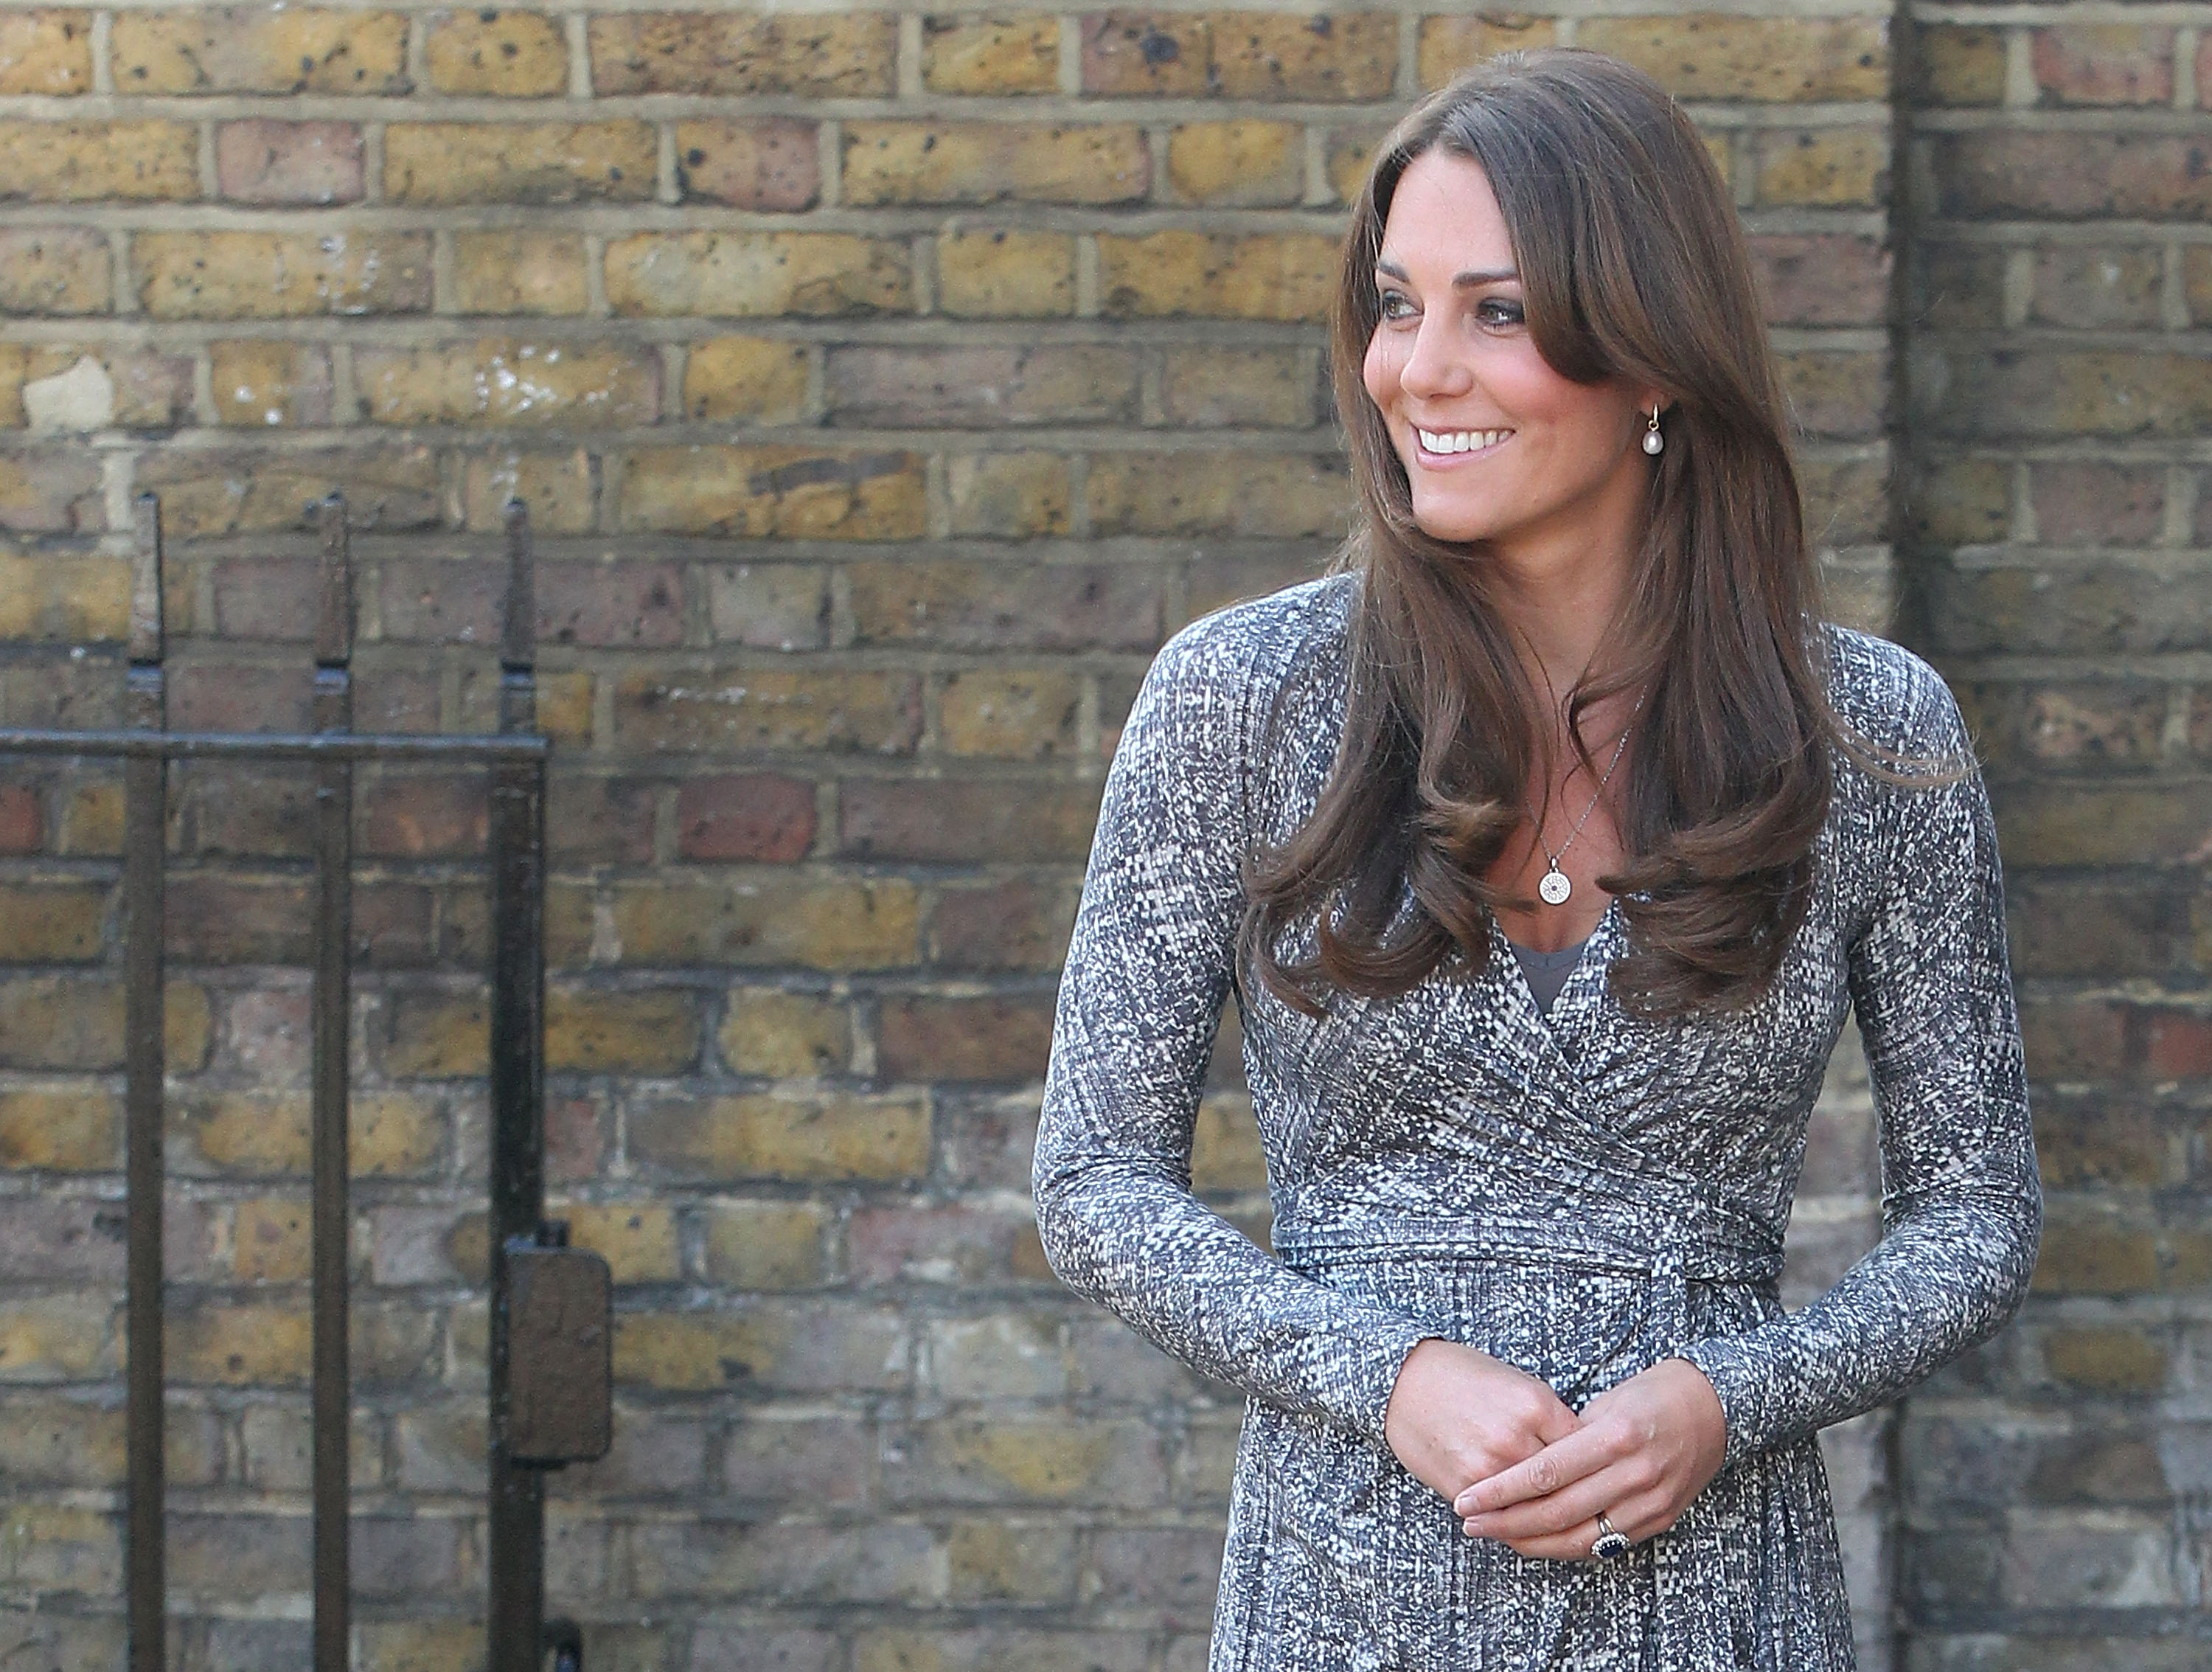 Kate Middleton Shows Off Baby Bump in London